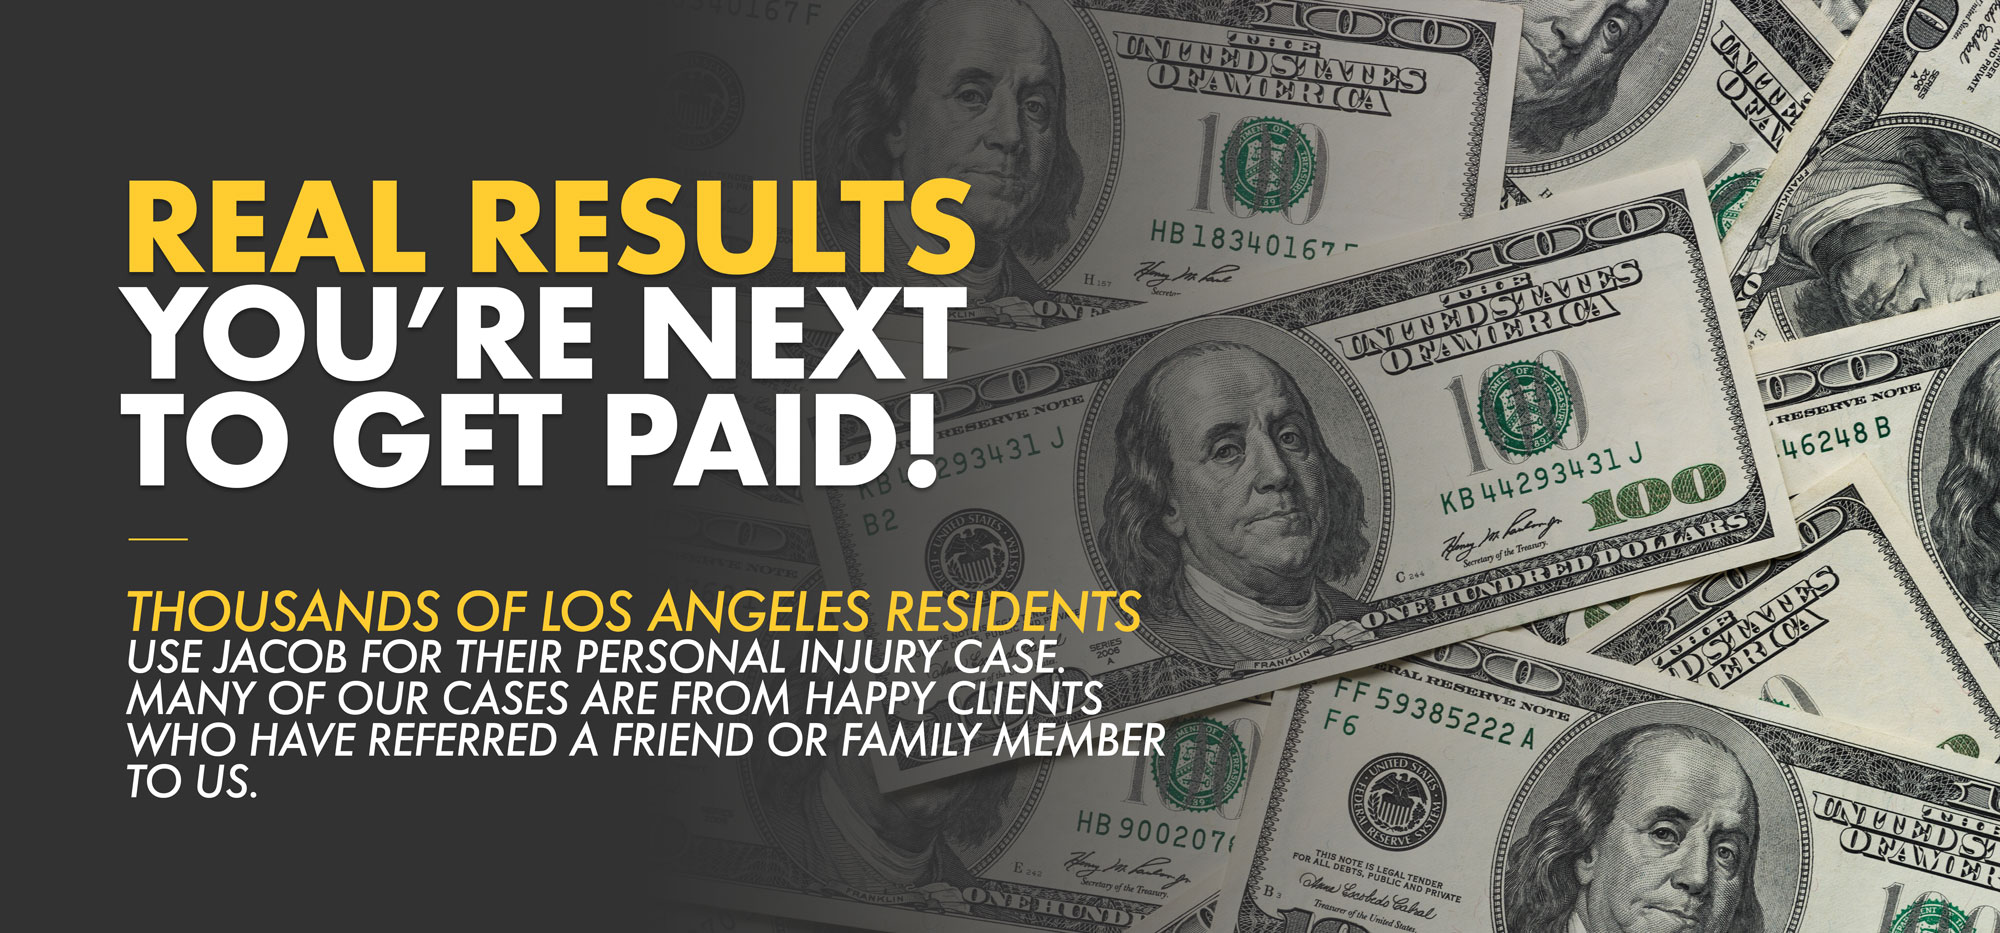 real-results-your-next-to-get-paid-banner